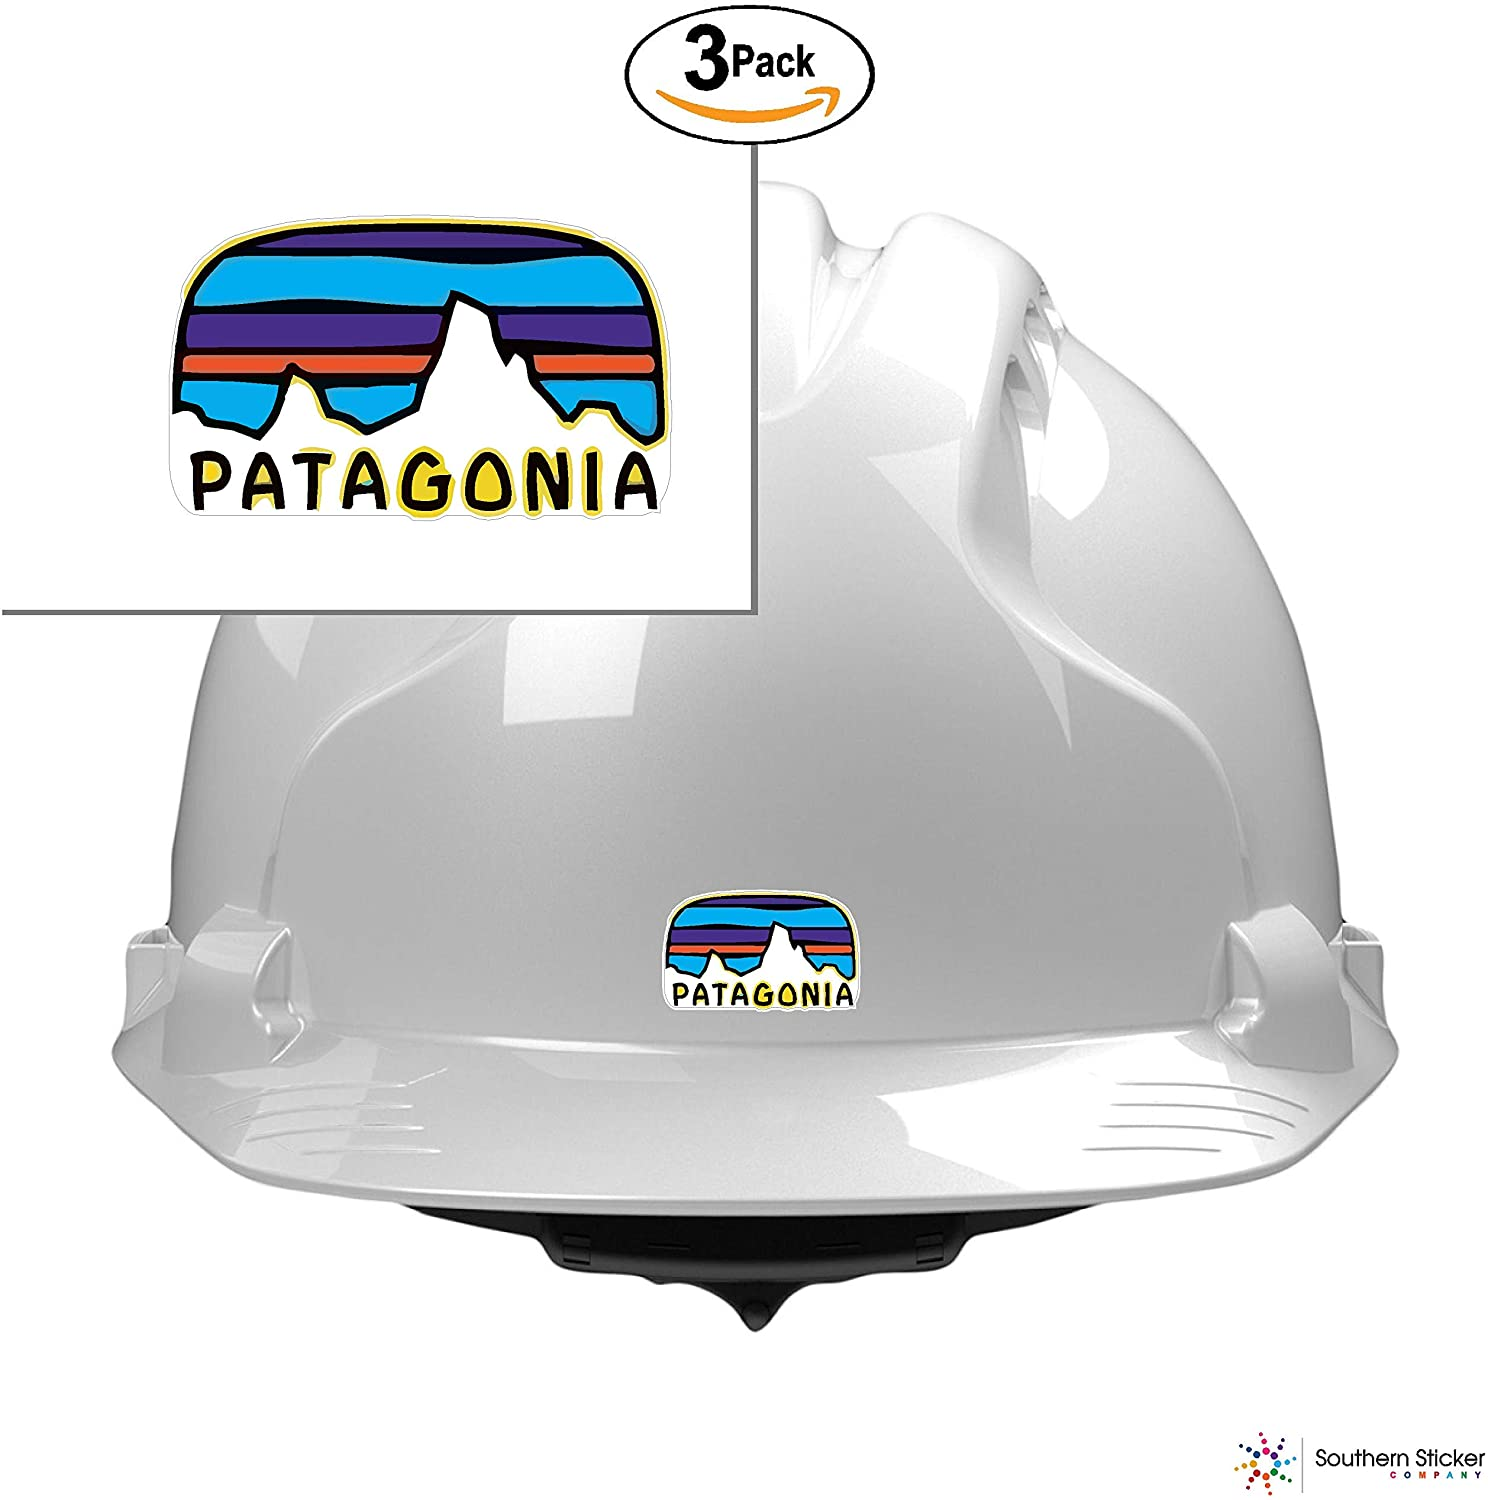 (3) Oval Patagonia Text Mountain Monte Fritz Roy Logo 2x1 Size inches Bumper Sticker Love Baby Laptop car Window Truck Adventure Outdoors - Made and Shipped in USA